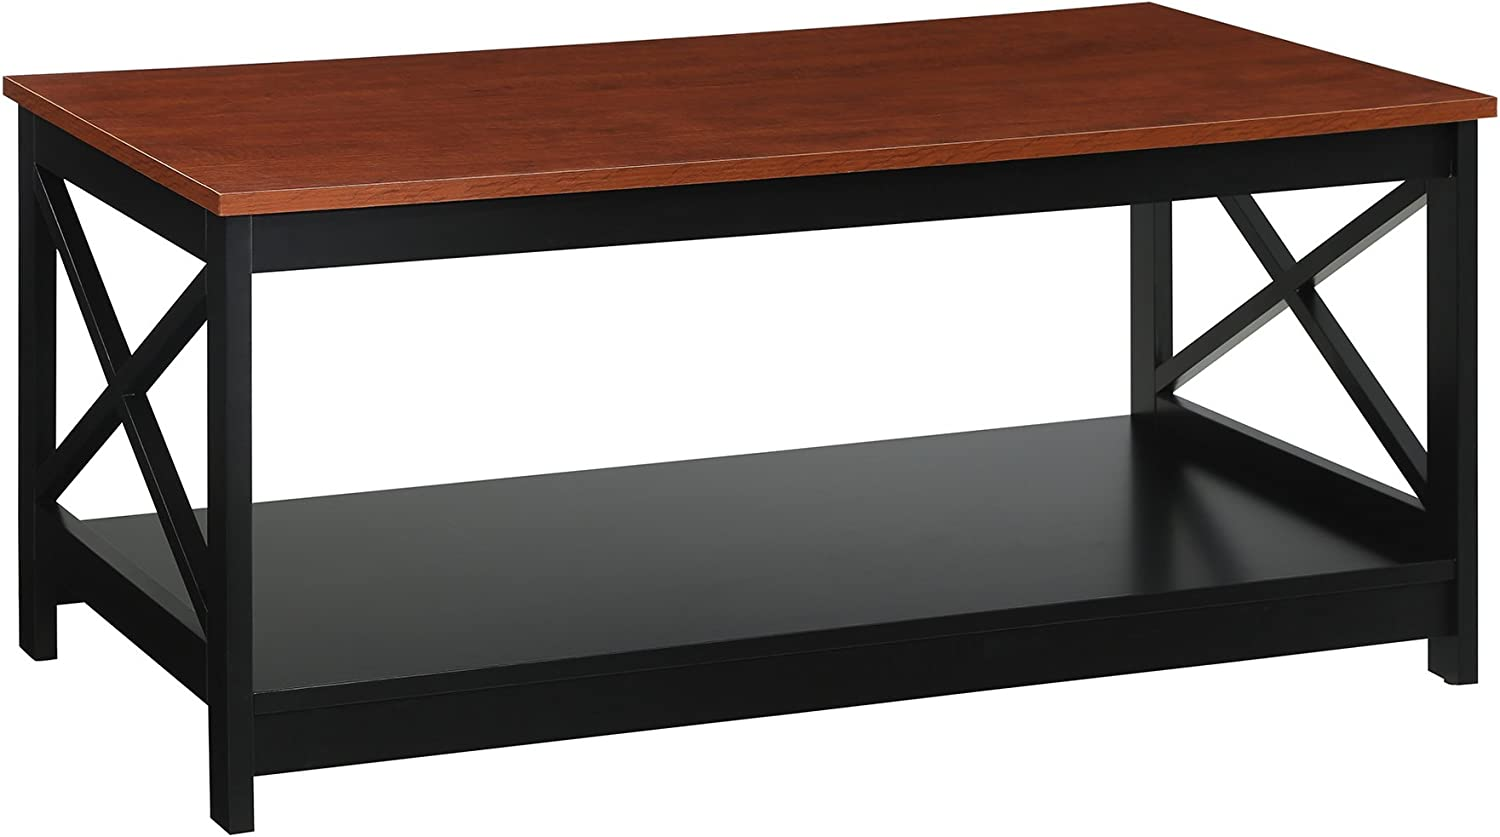 Convenience Concepts Oxford Coffee Table, Cherry / Black